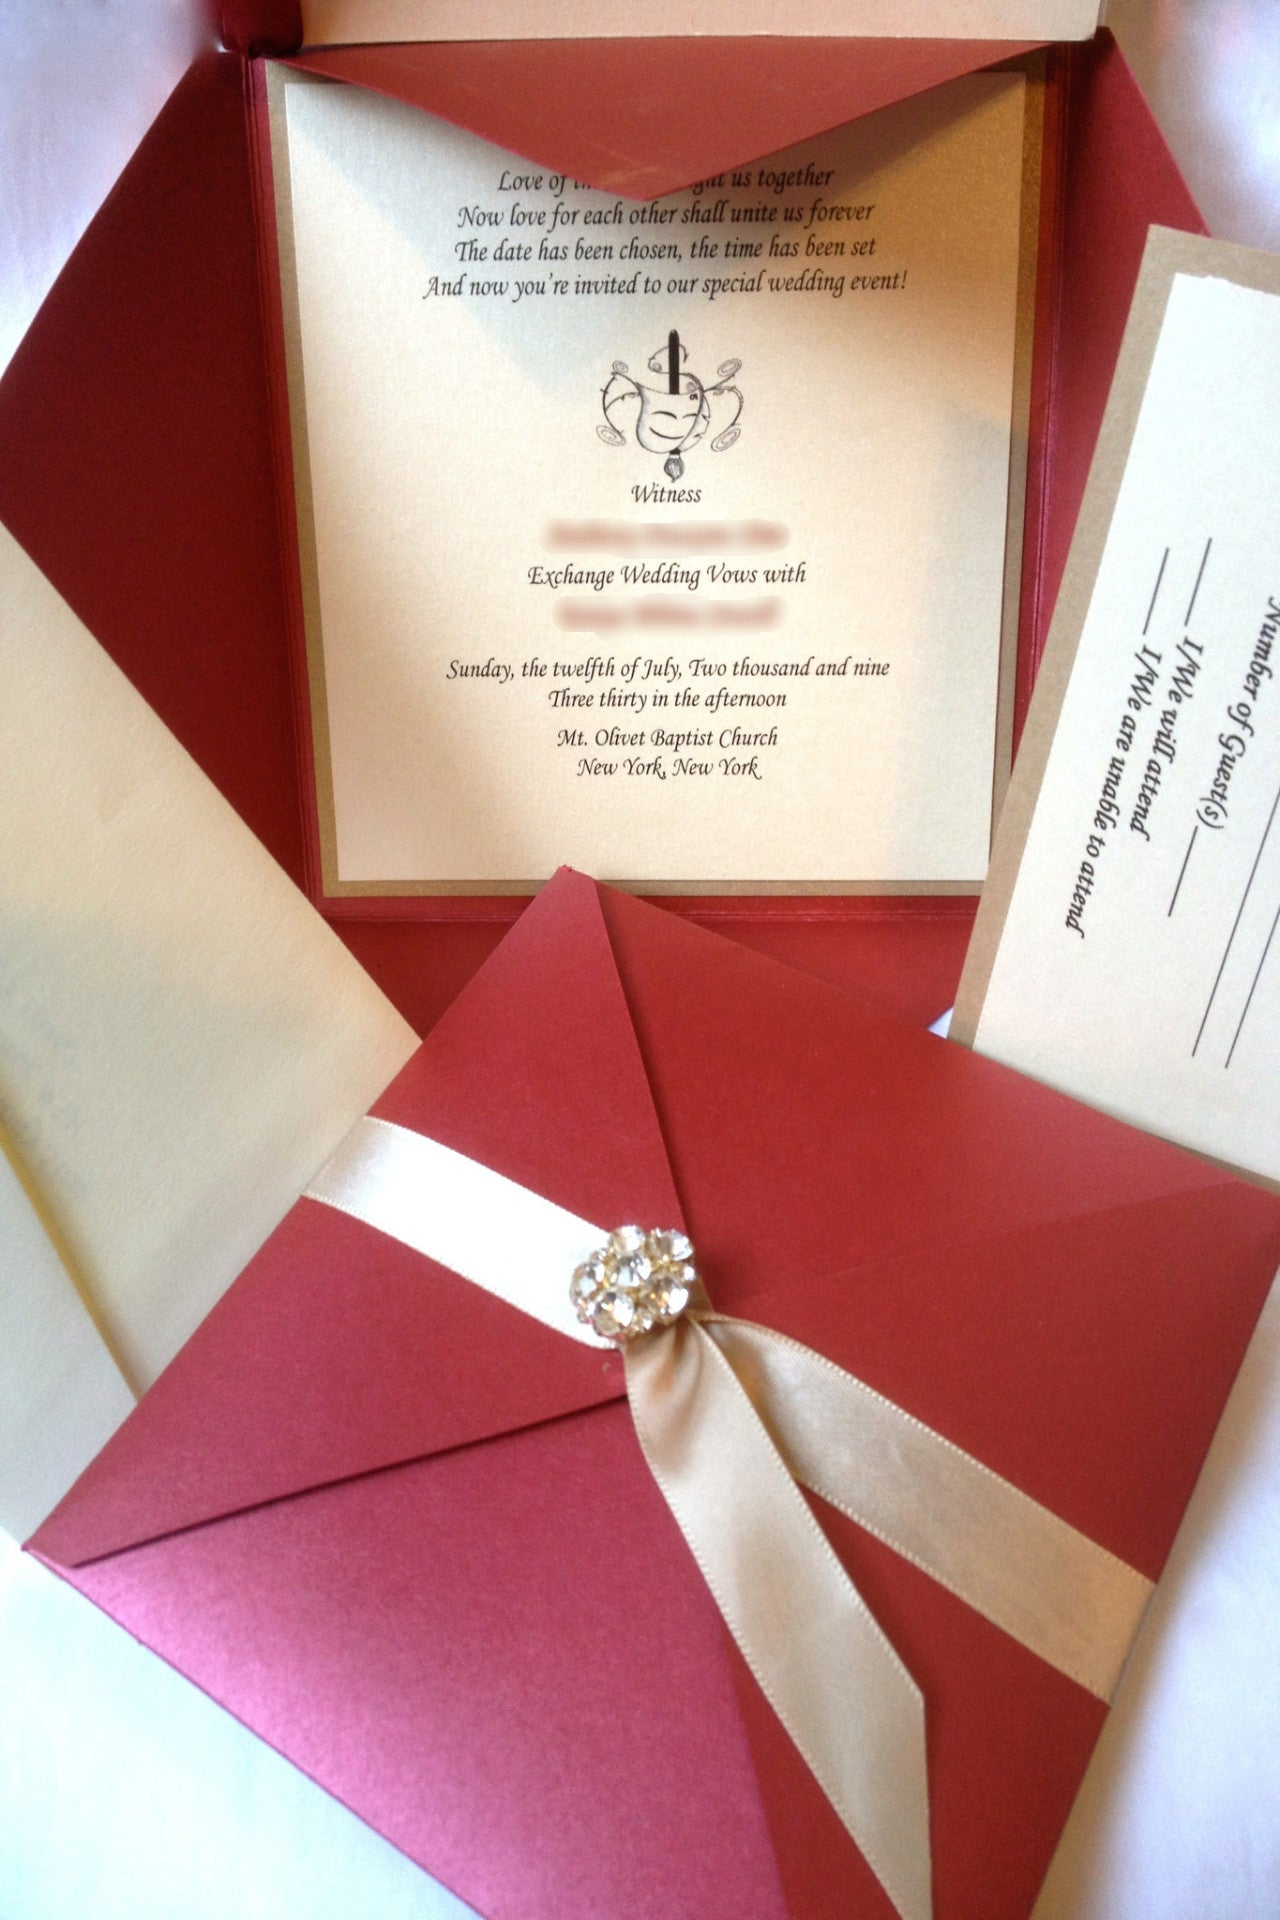 INVITATIONS/ PROGRAMS/ FAVORS - Venues and Vendors Express